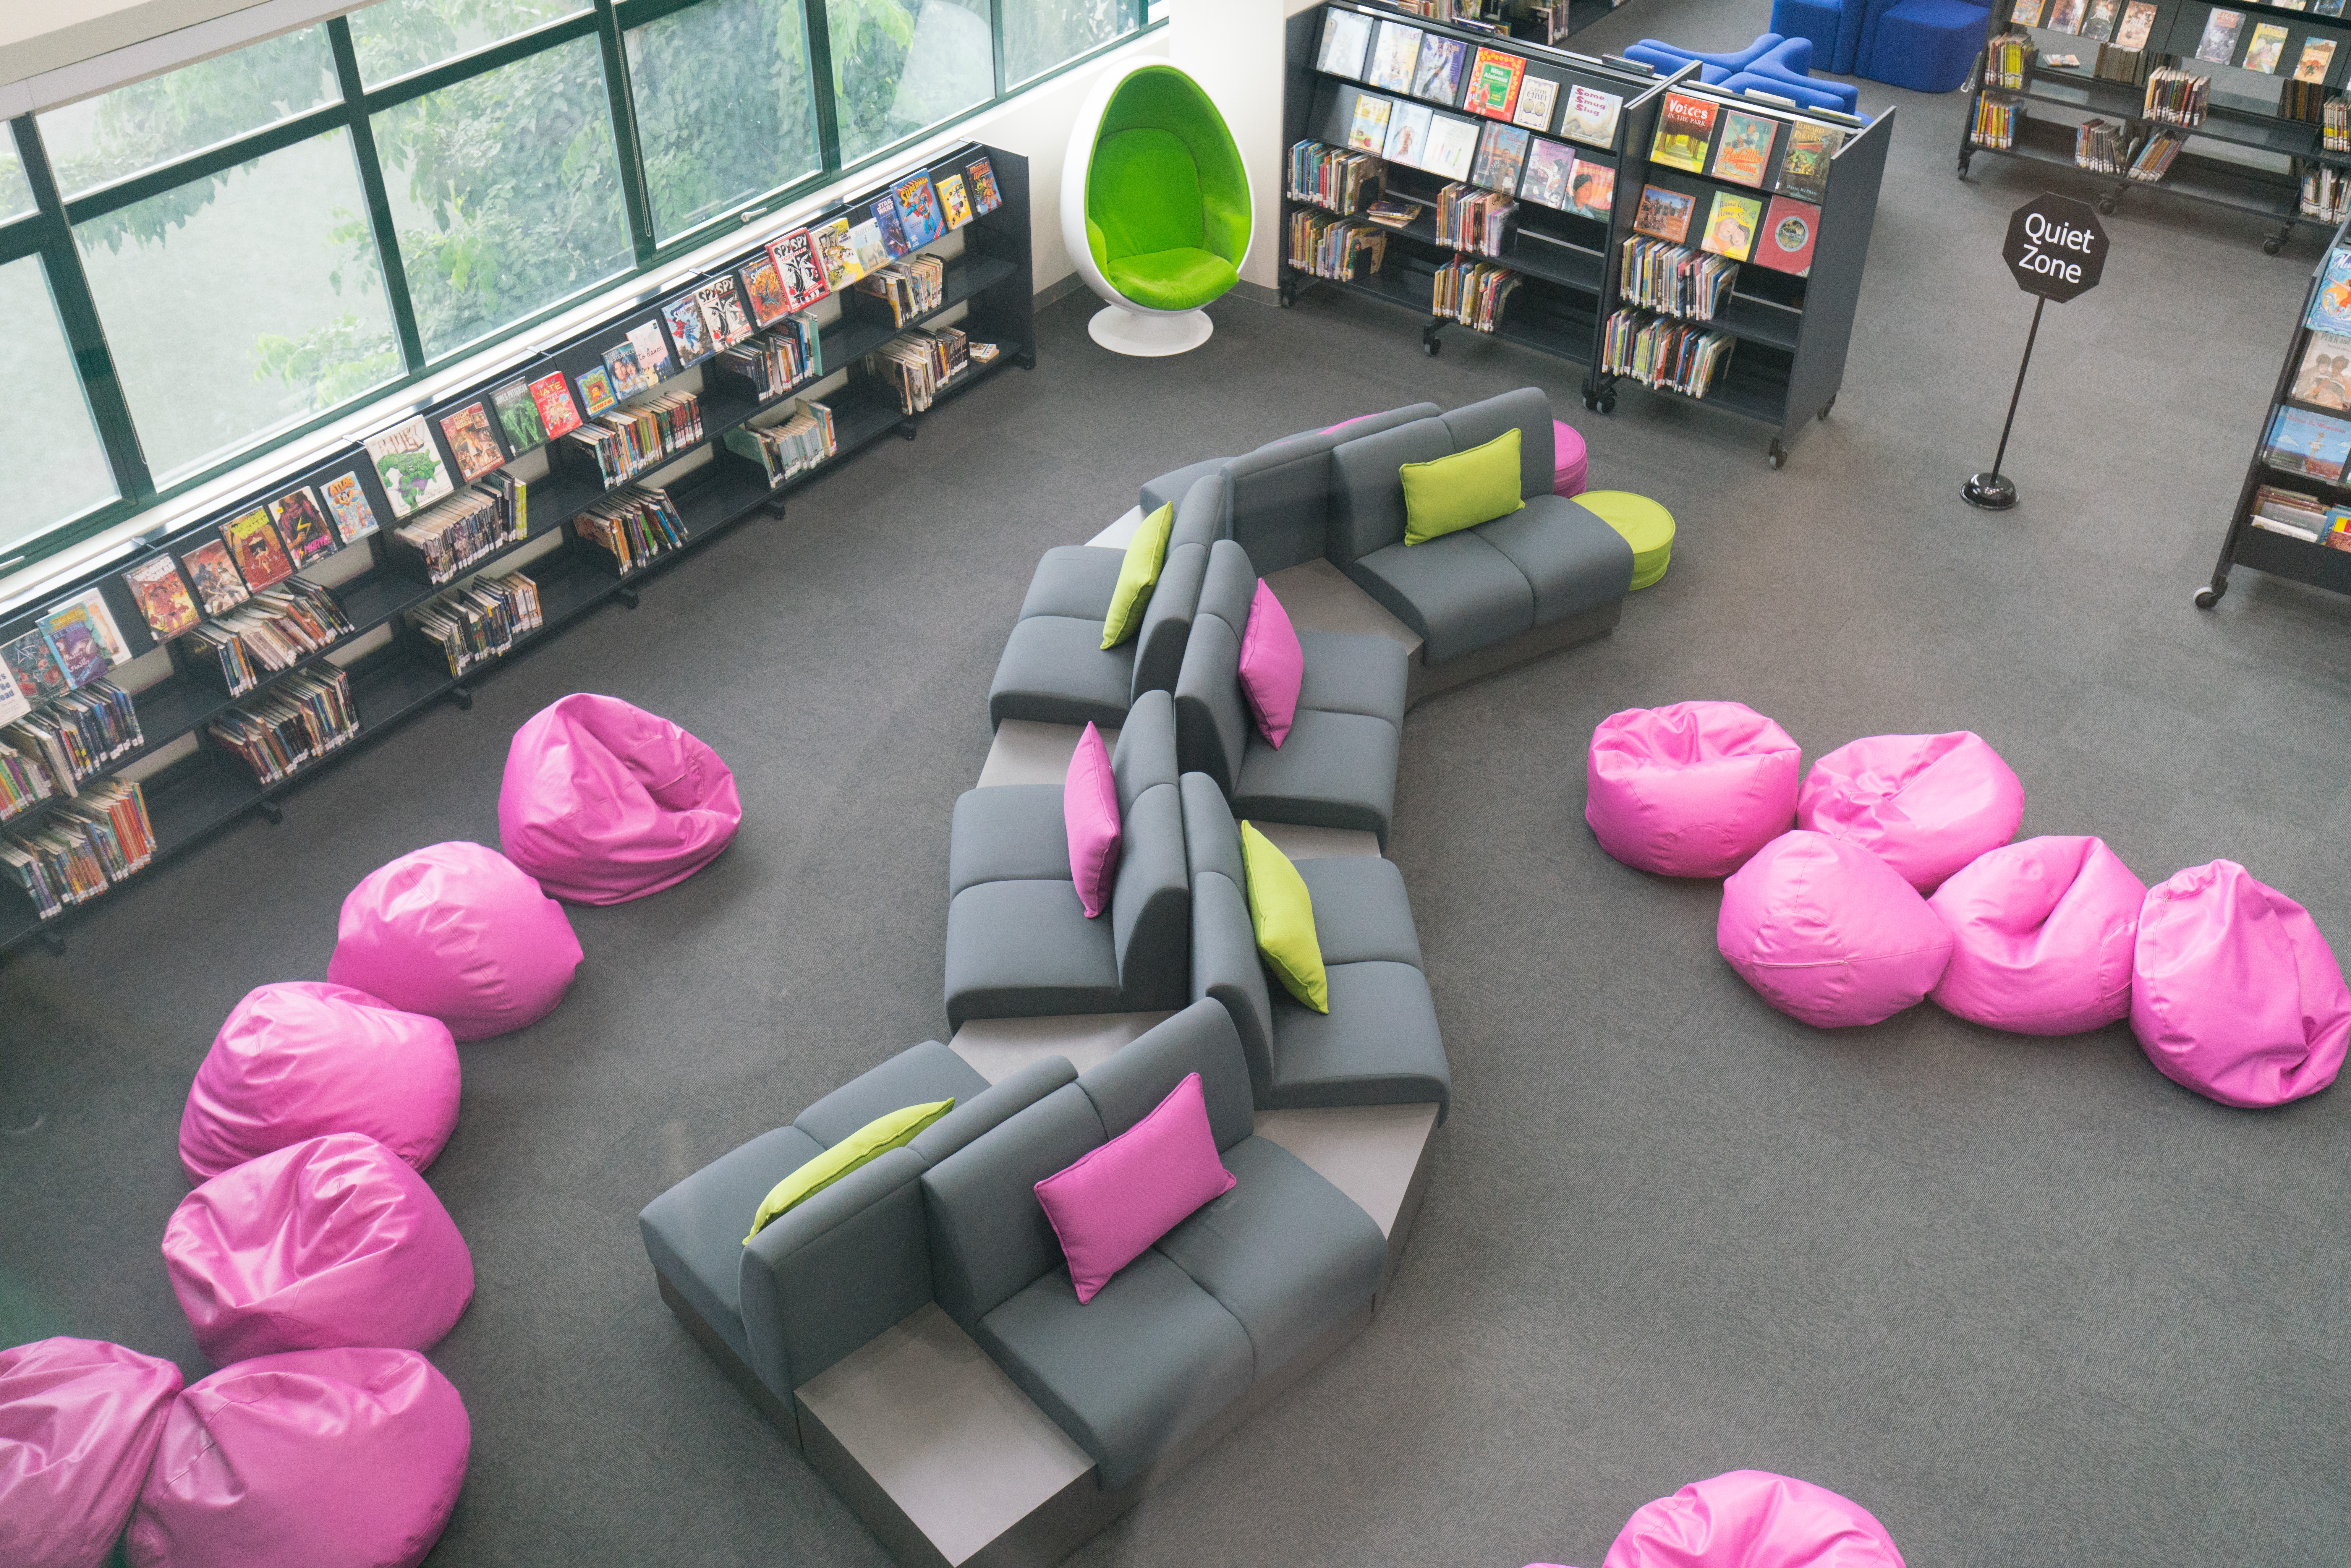 Ism library